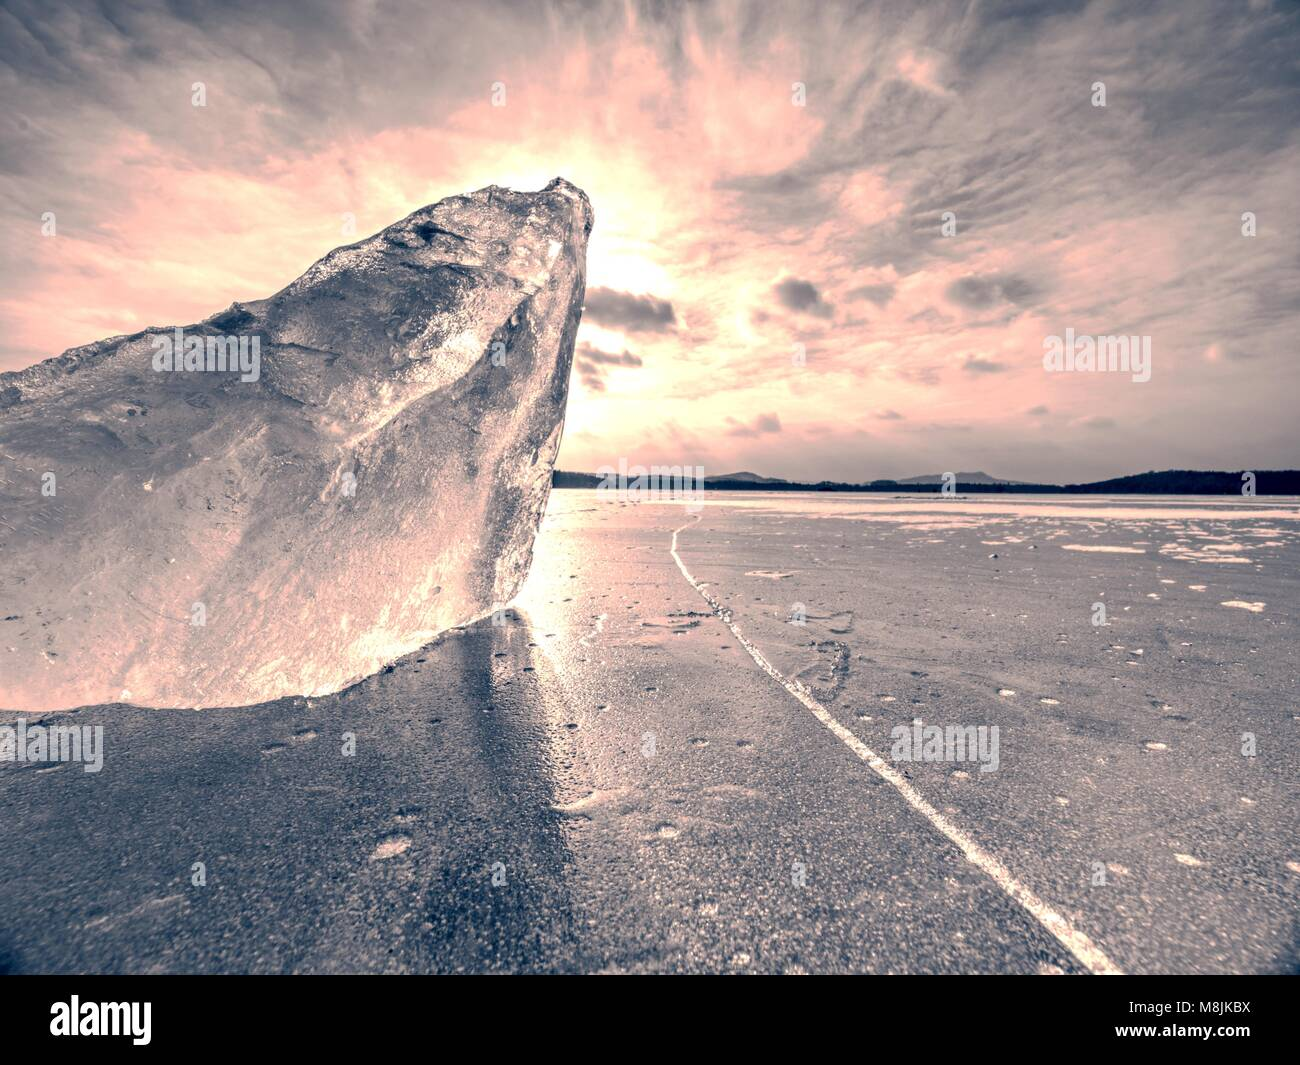 Abstract ice floe on frozen lake, texture of weathered ice and sparkling of evening sun. Deep ice cracks. - Stock Image